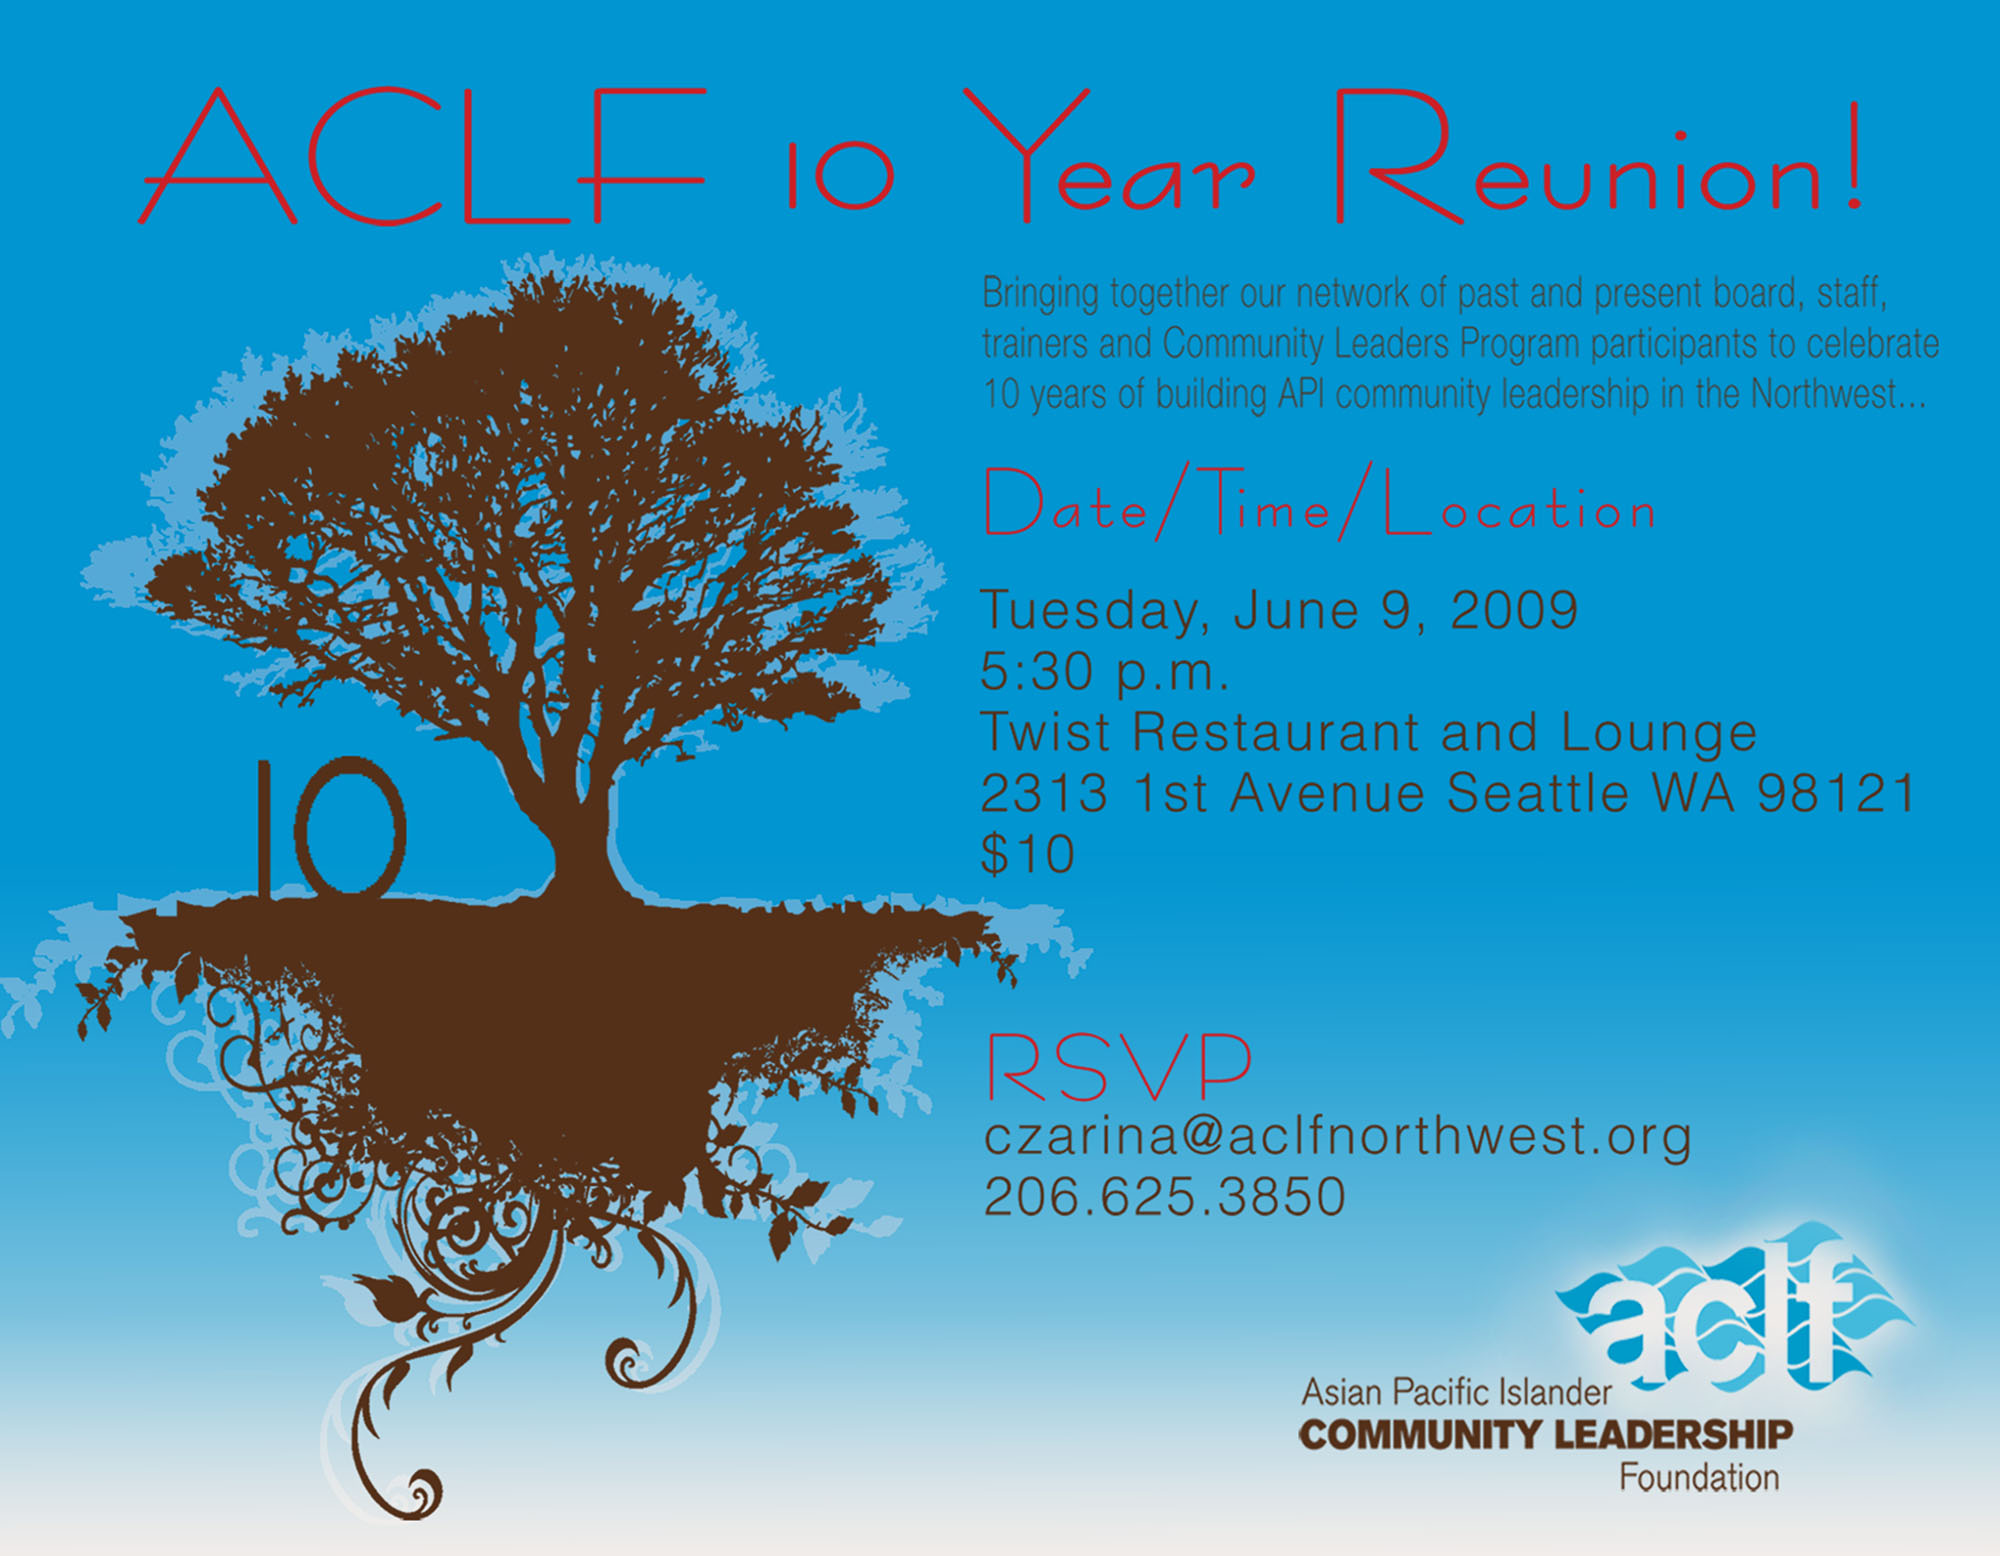 6909 aclf 10 year reunion invitation final asian pacific 6909 aclf 10 year reunion invitation final stopboris Gallery